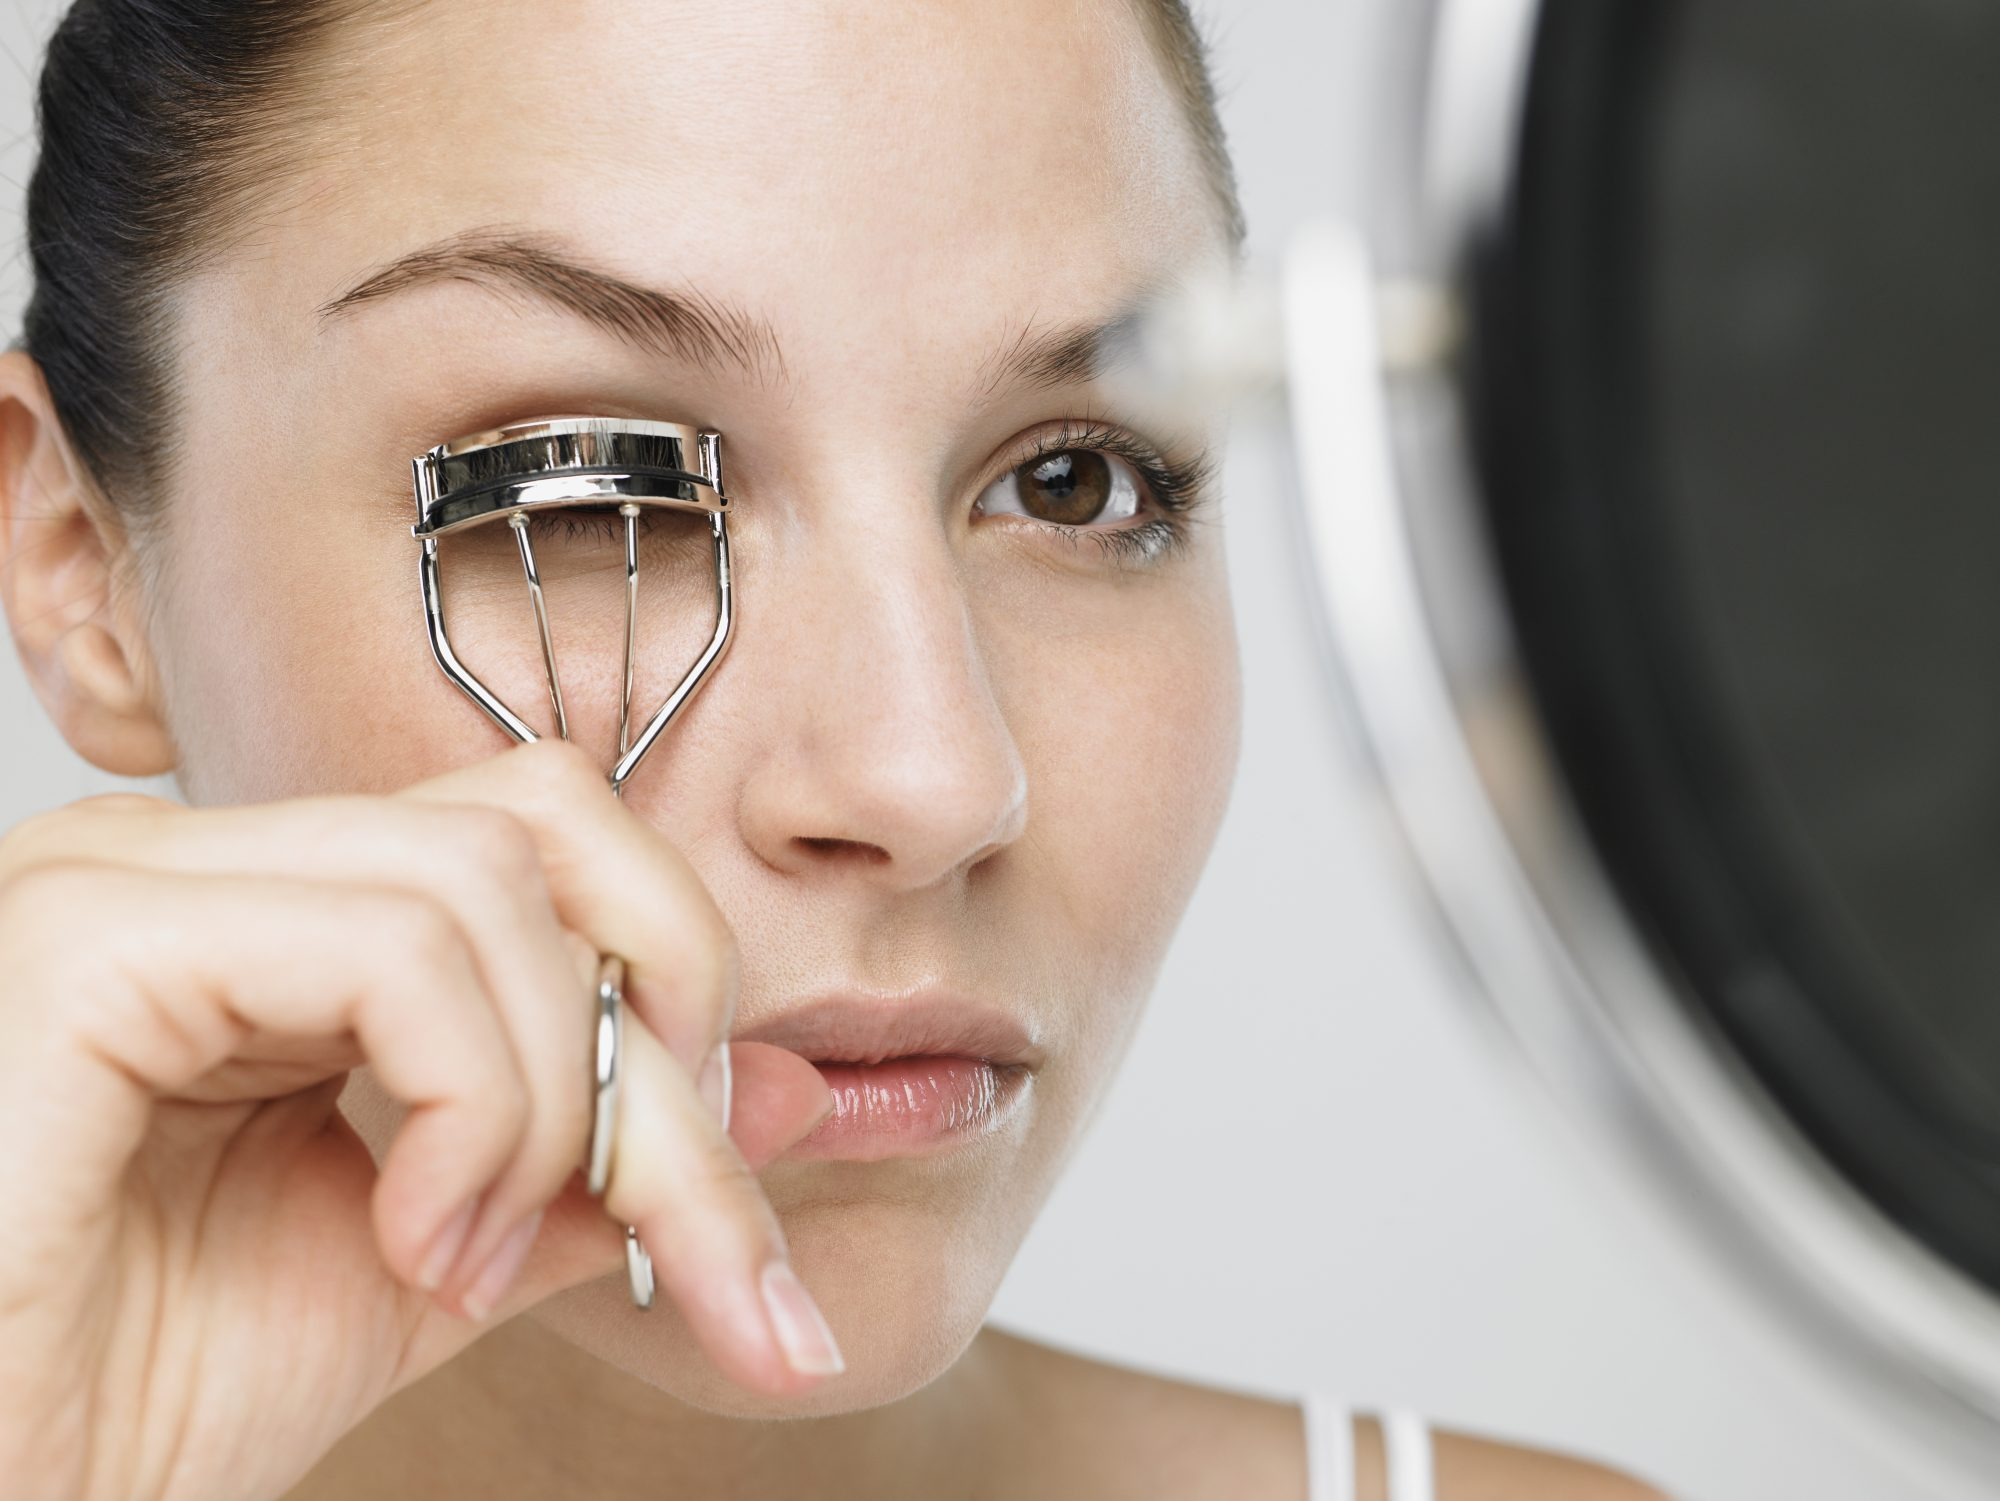 Woman Using Eyelash Curler